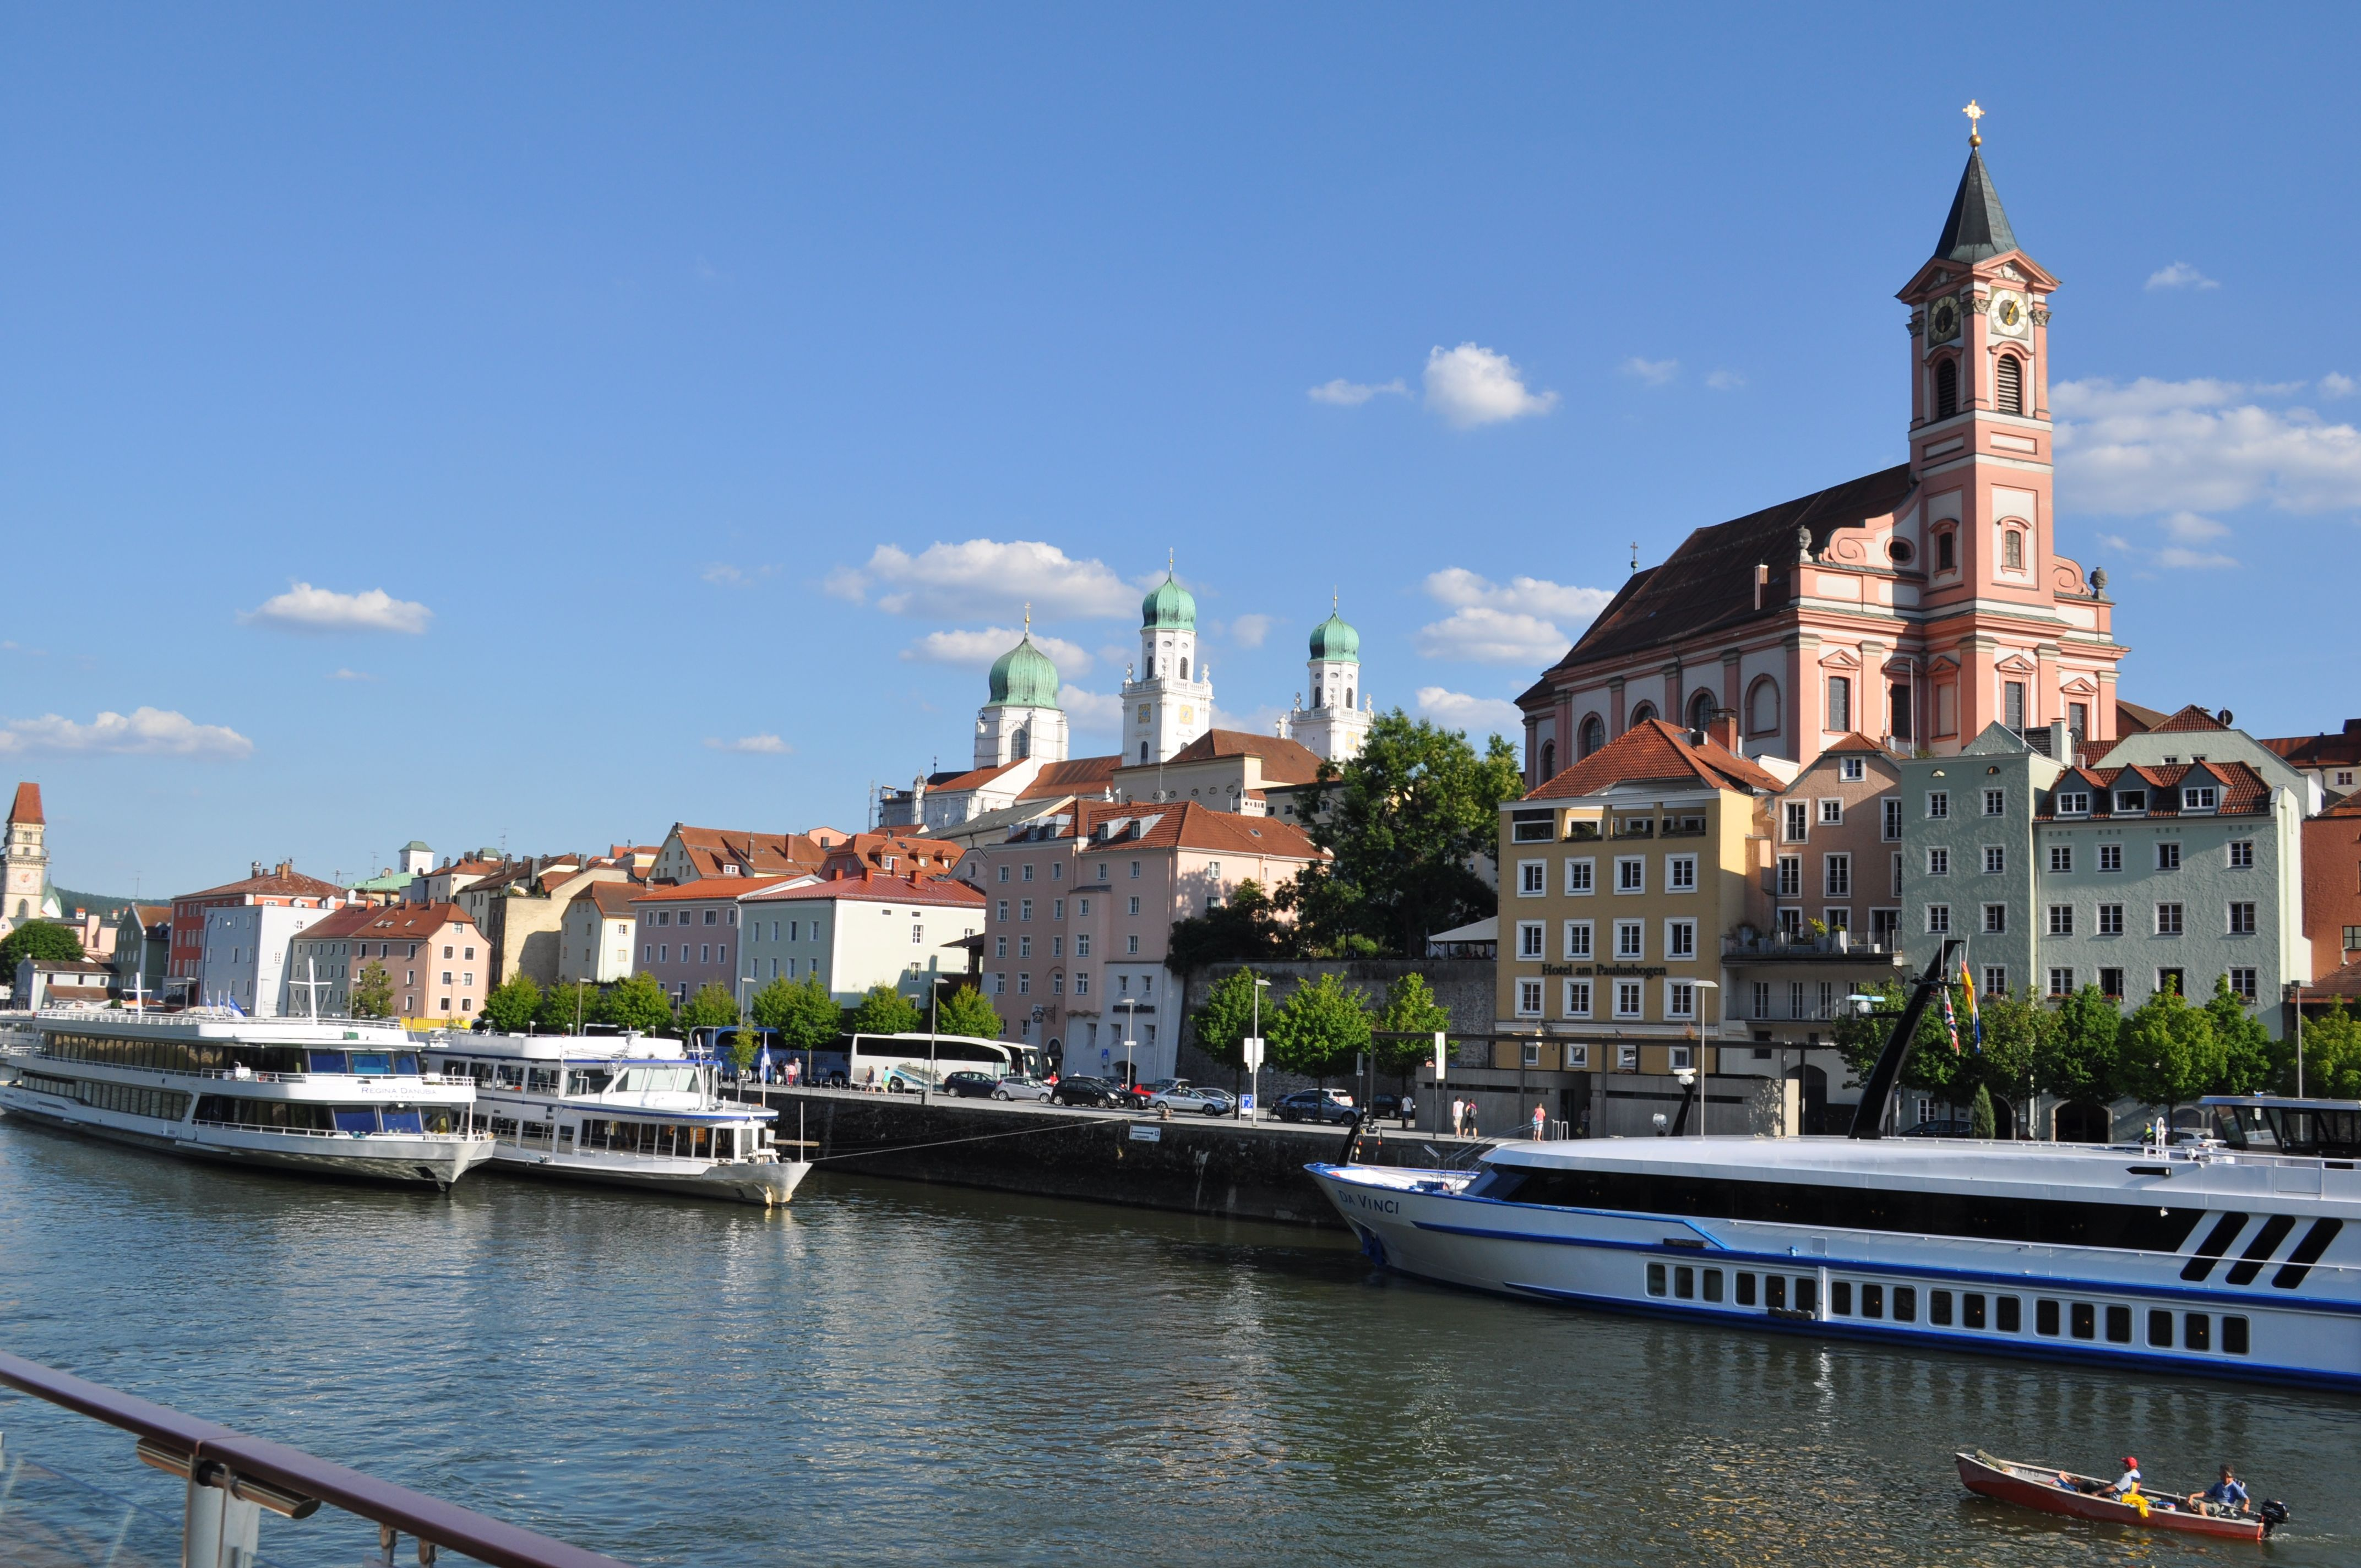 Picturesque Passau receives the largest chunks of tourists from river cruises.